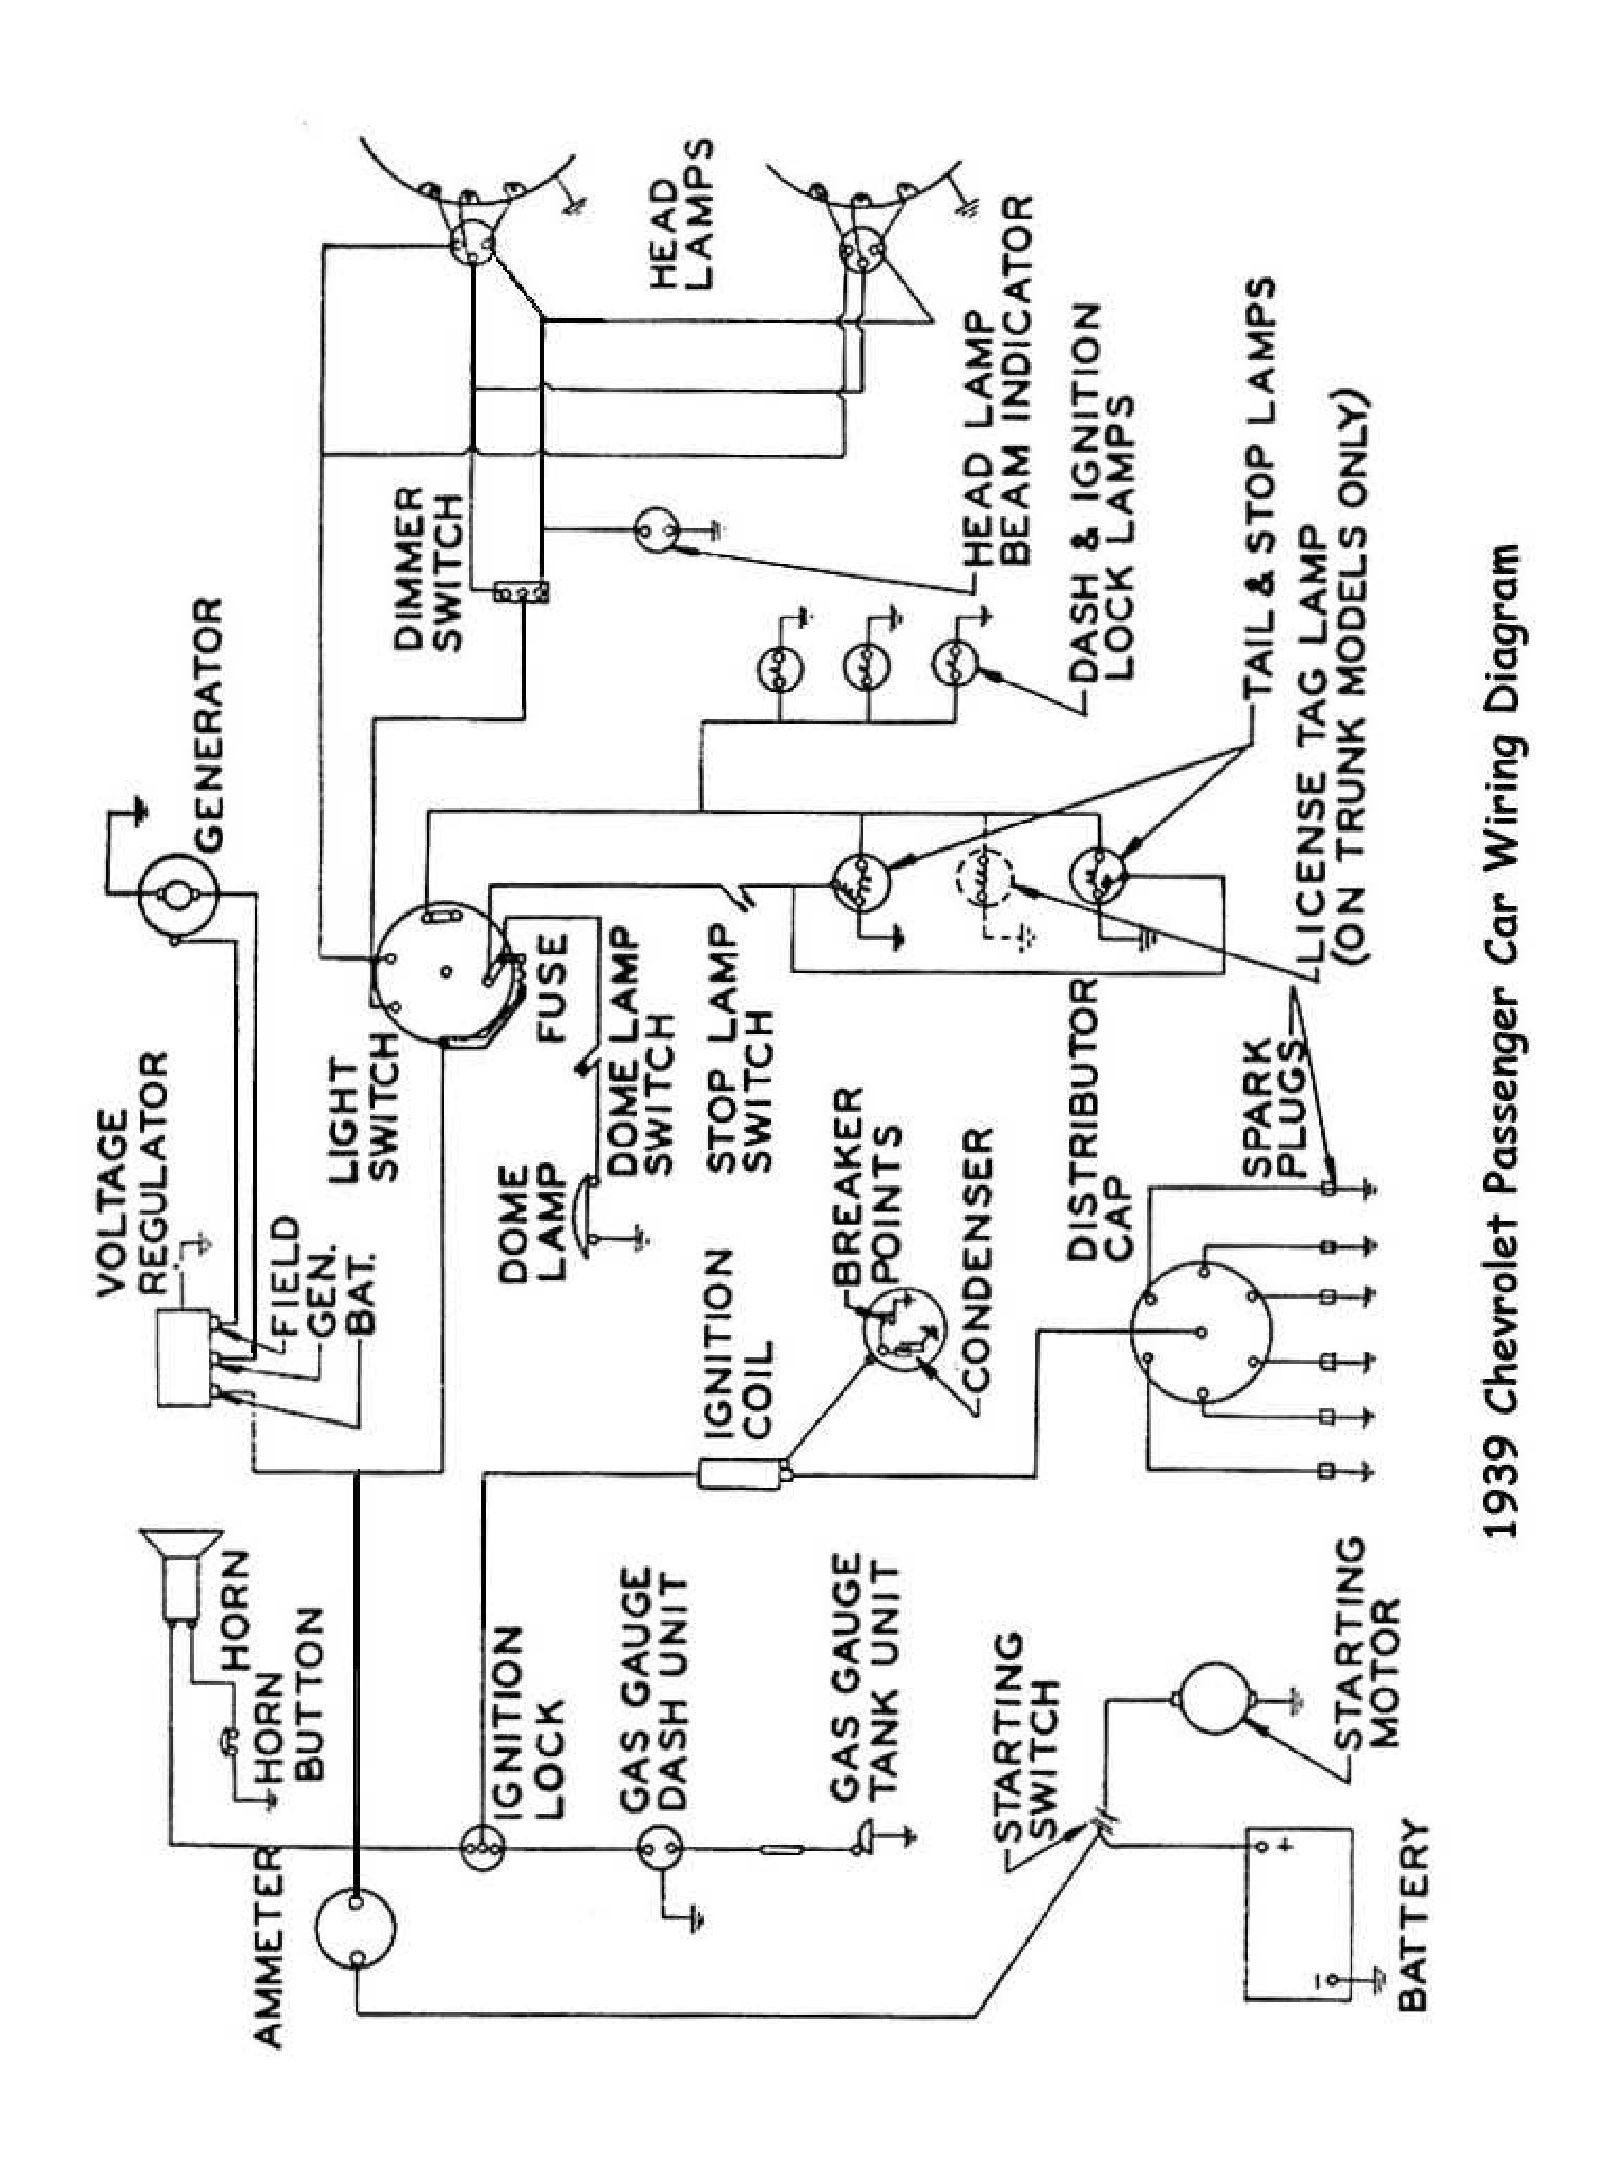 Car Dome Light Wiring Diagram Bulldog Vehicle Remote Start and Keyless Entry Installation Security Of Car Dome Light Wiring Diagram